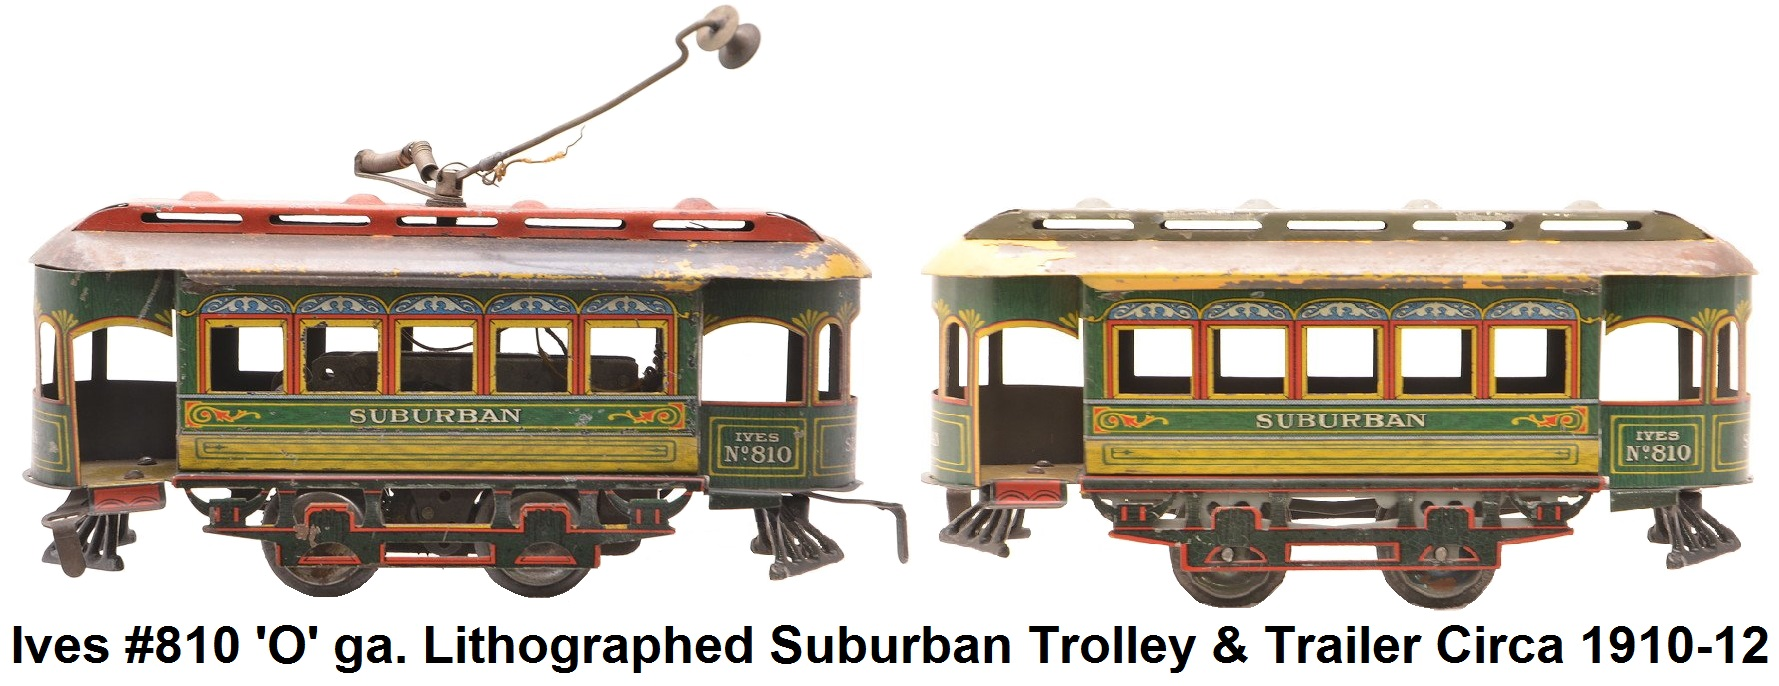 Ives #810 prewar 'O' gauge lithographed Suburban trolley with trailer circa 1910-12